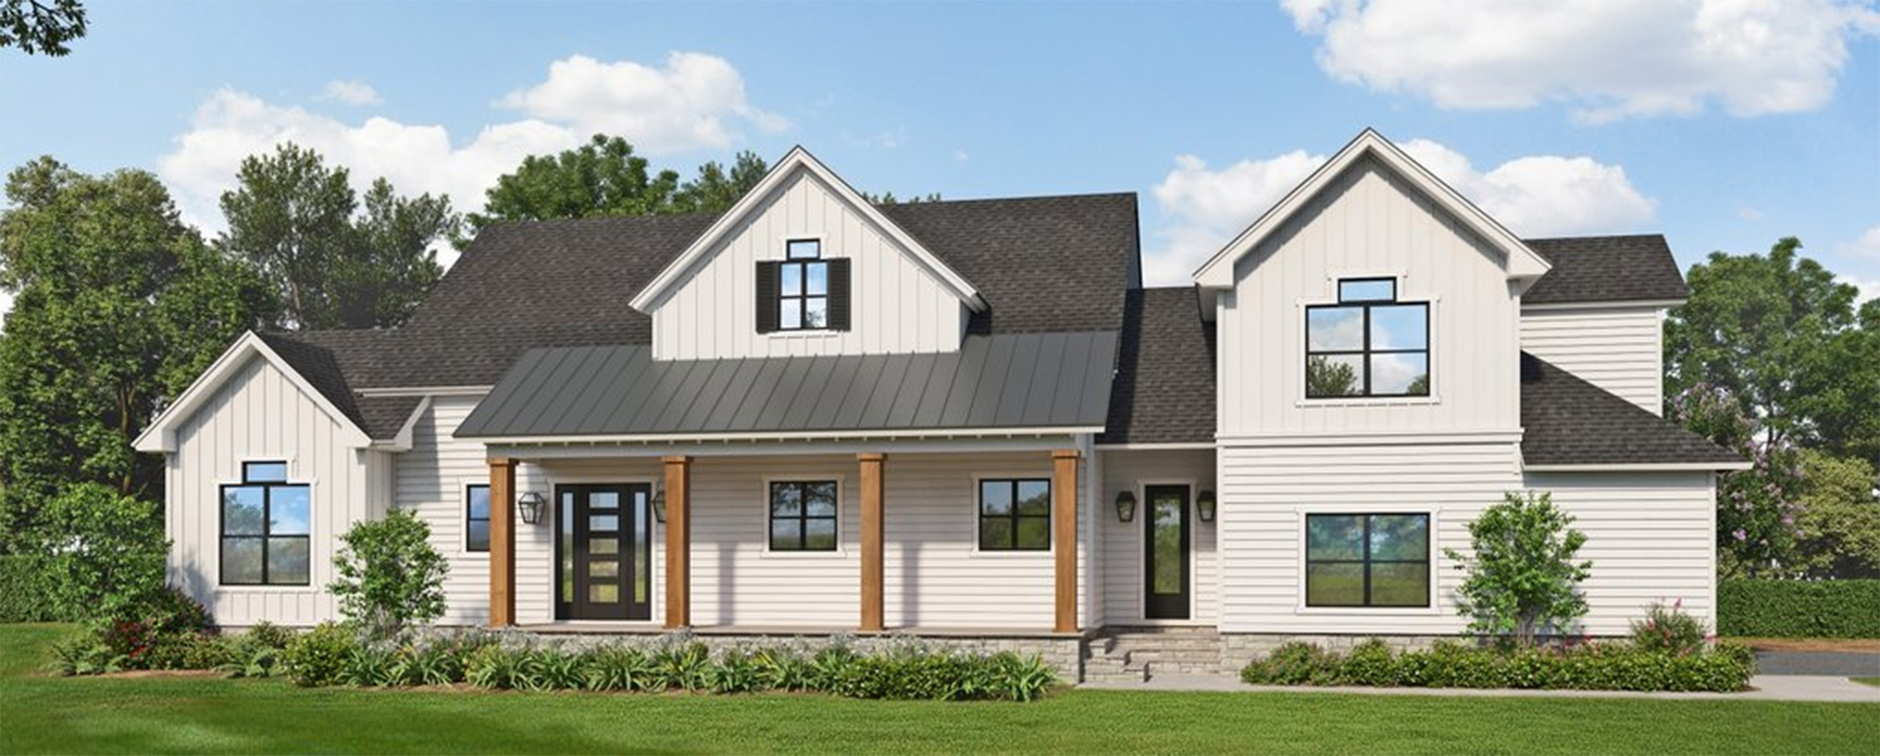 Browse 3 Bedroom House Plans